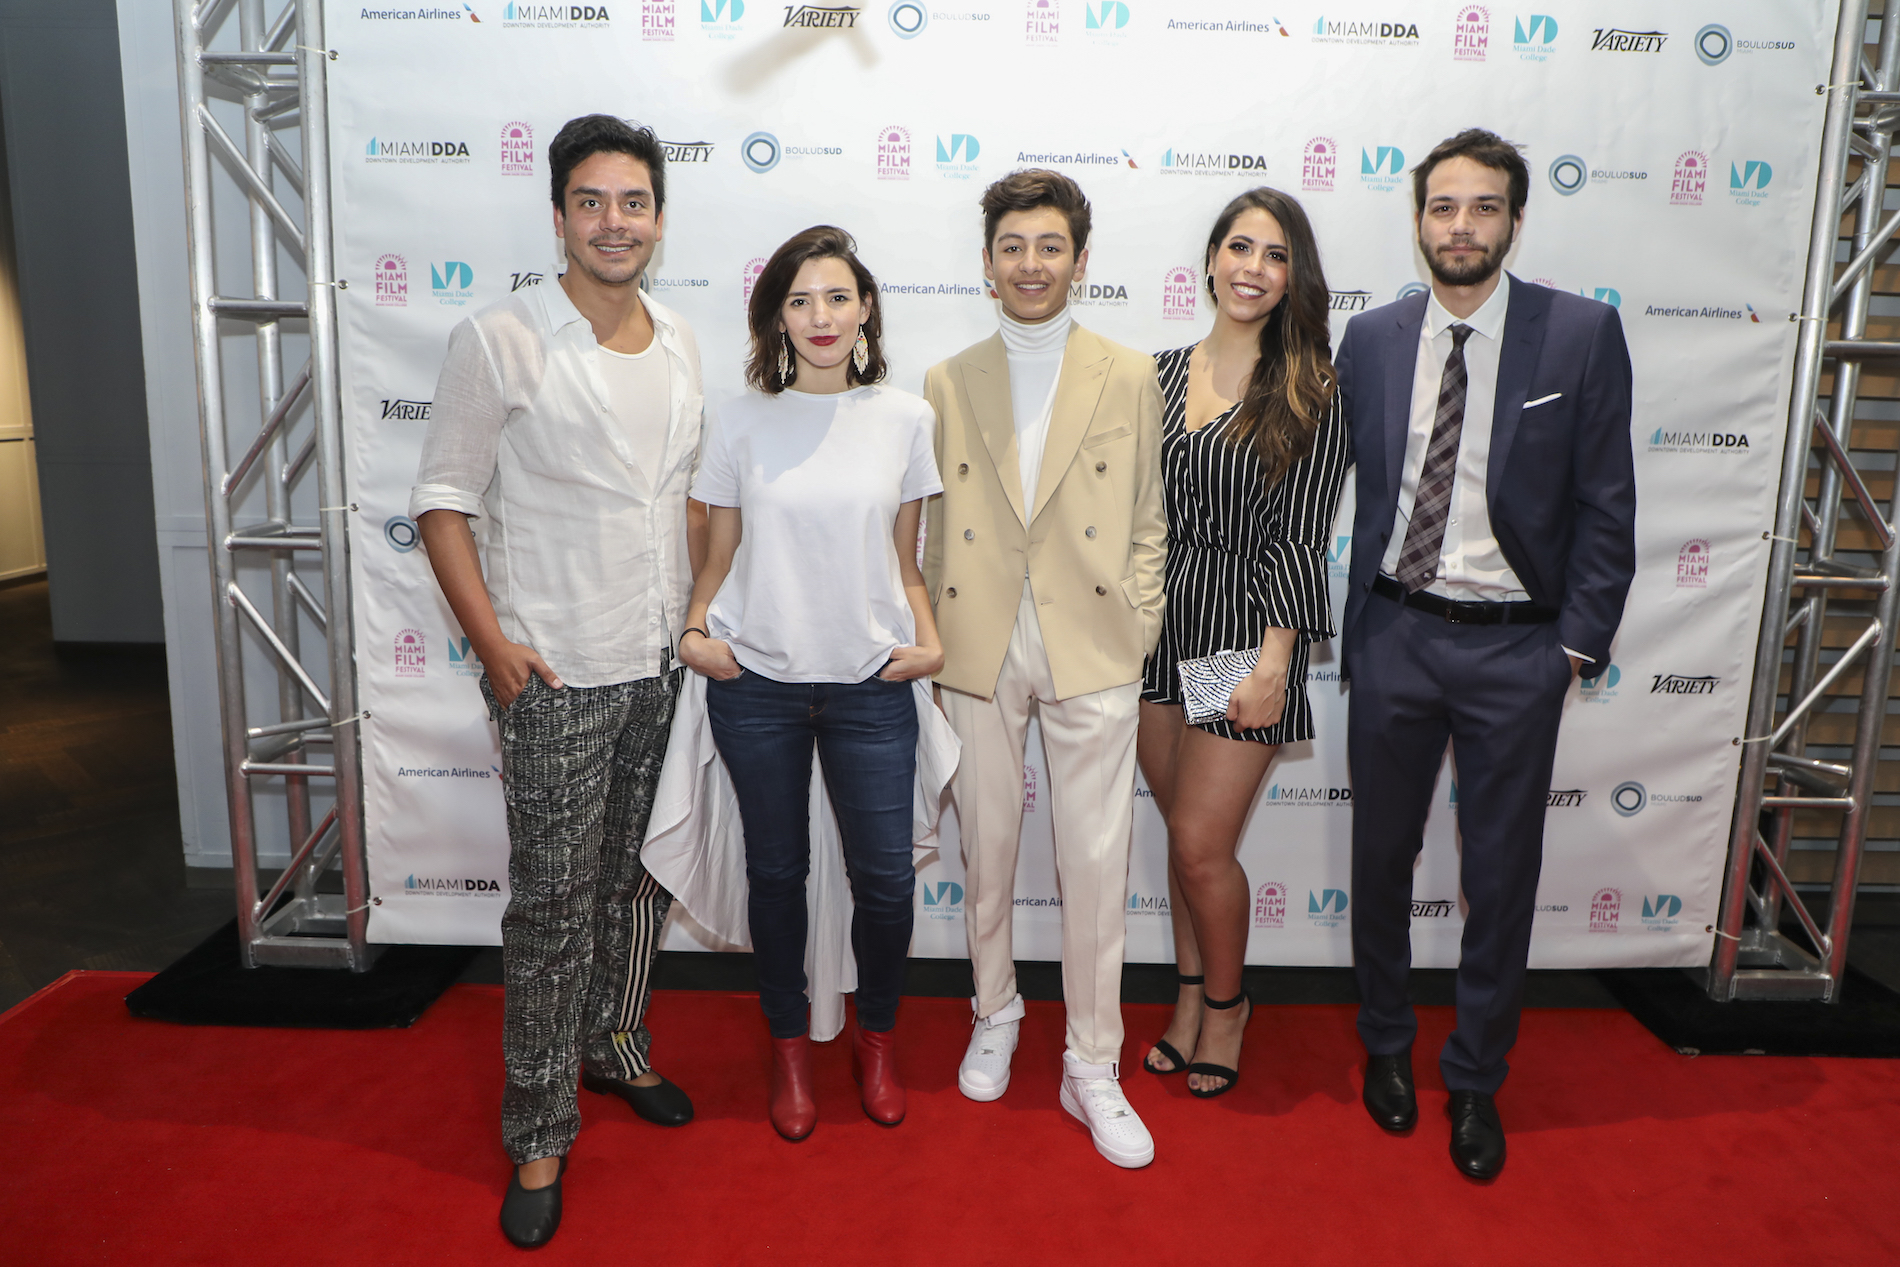 5 Rising Latino Actors & Filmmakers Share How Their Work is Breaking Stereotypes